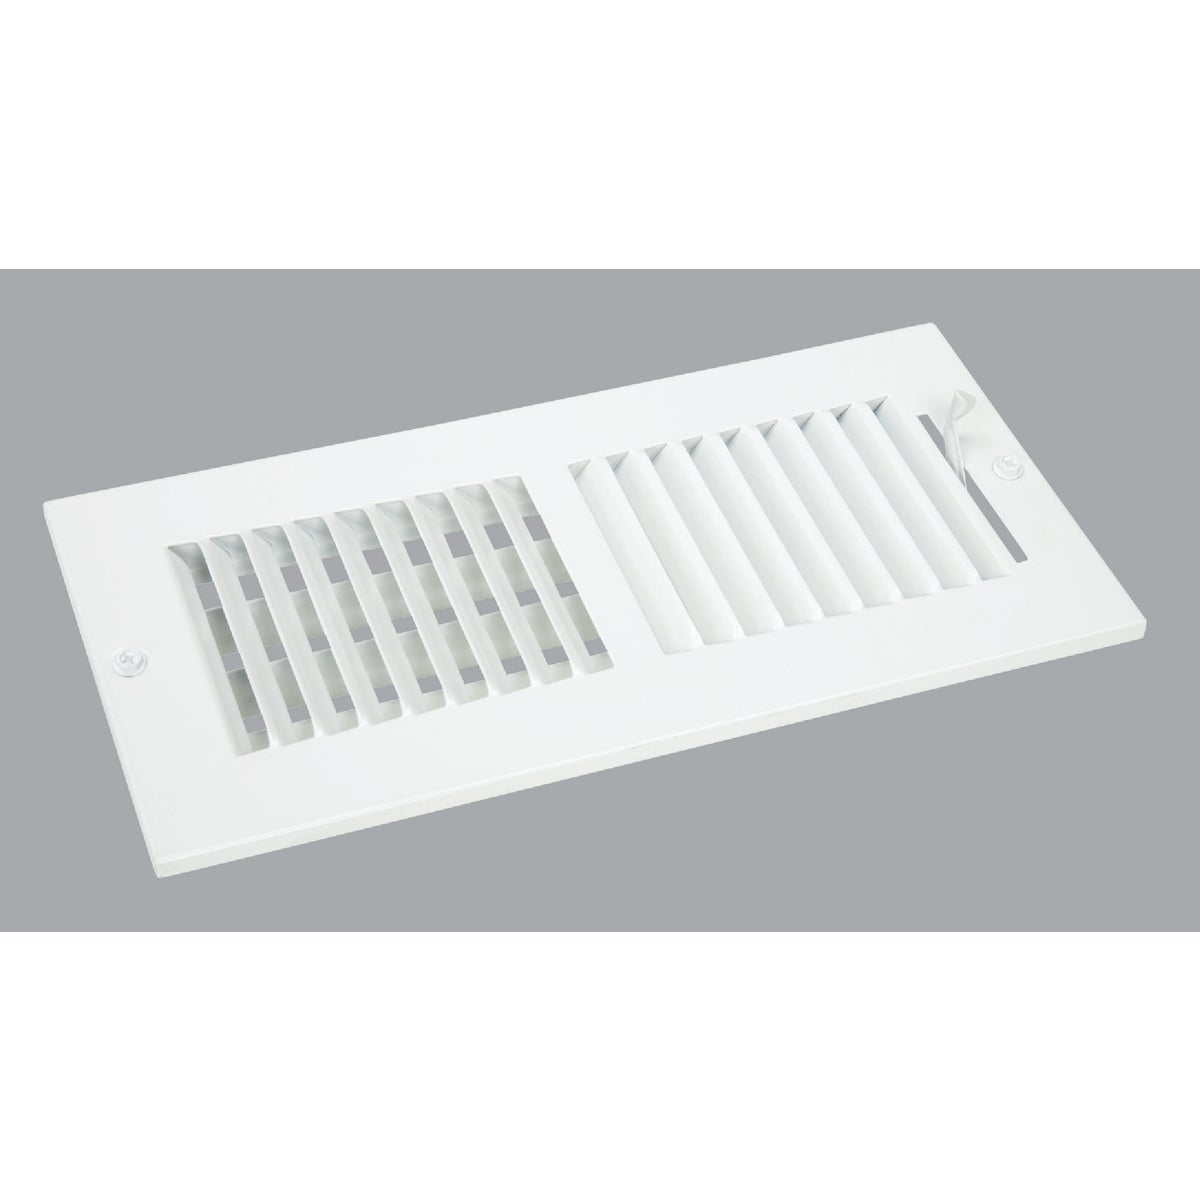 4X10 WHT WALL REGISTER